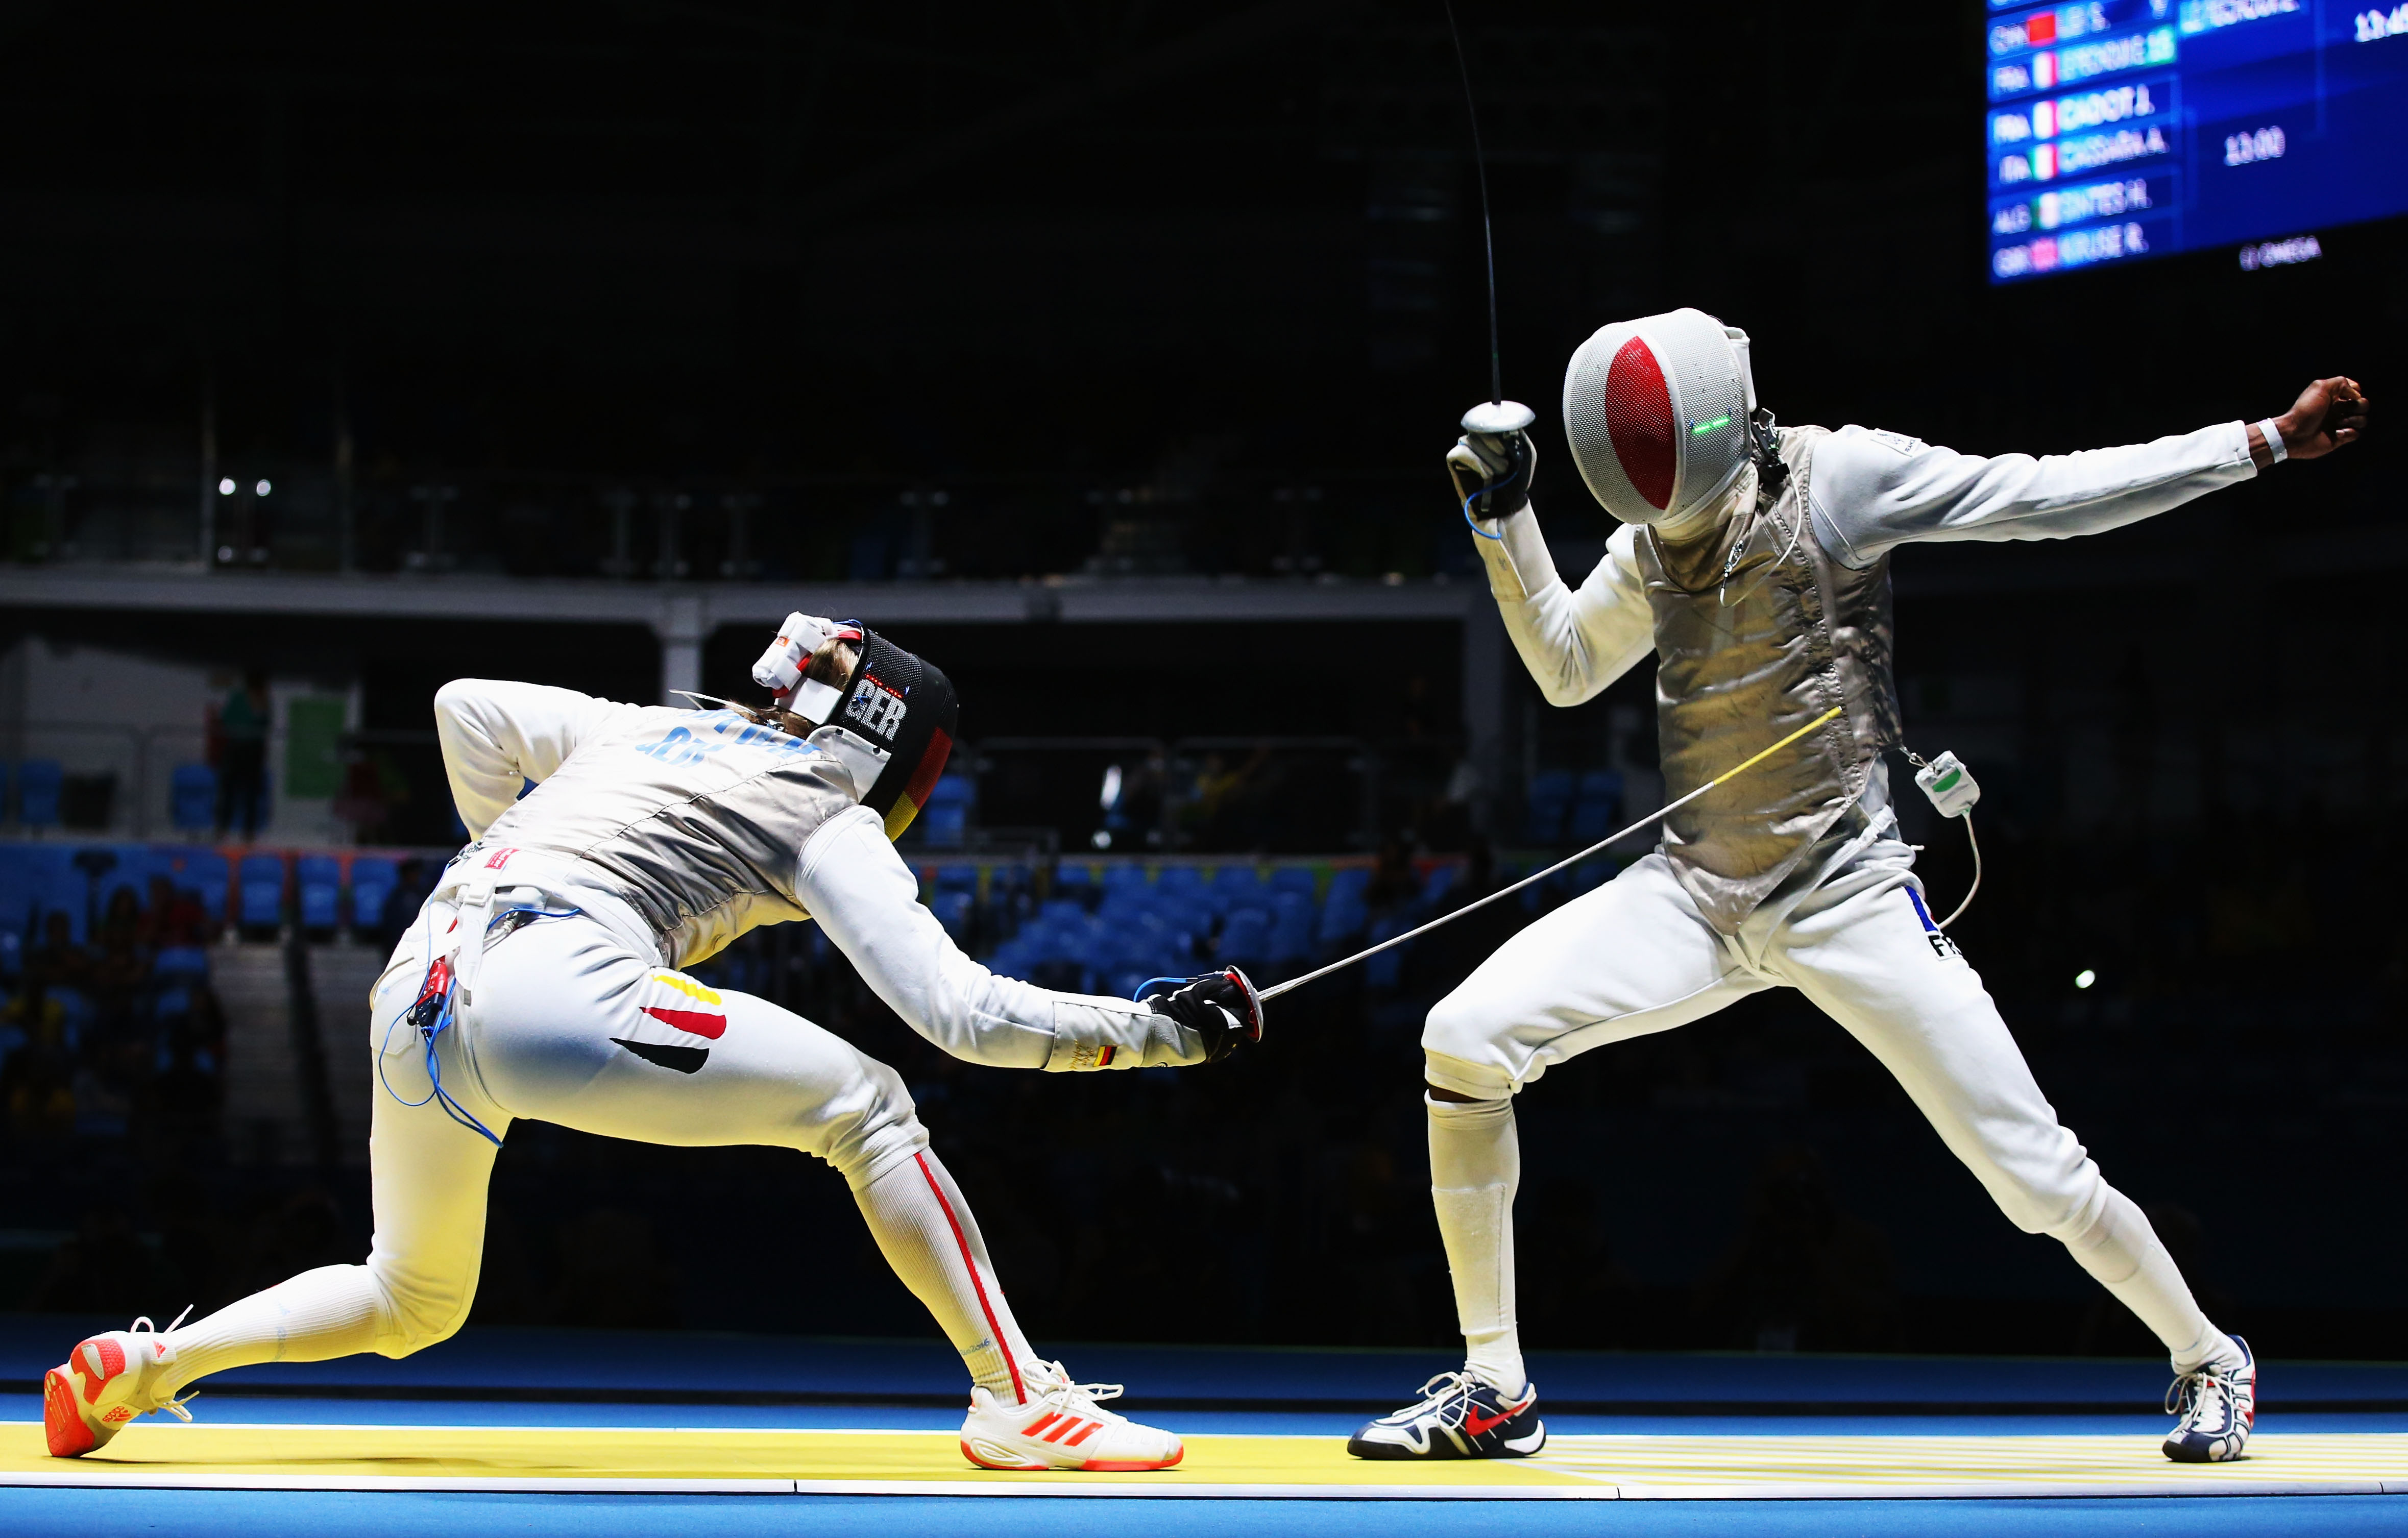 RIO DE JANEIRO, BRAZIL - AUGUST 07: Peter Joppich (L) of Germany competes on his way to defeating Enzo Lefort of France during Men's Individual Foil on Day 2 of the Rio 2016 Olympic Games at Carioca Arena 3 on August 7, 2016 in Rio de Janeiro, Brazil.  (Photo by Alex Livesey/Getty Images)